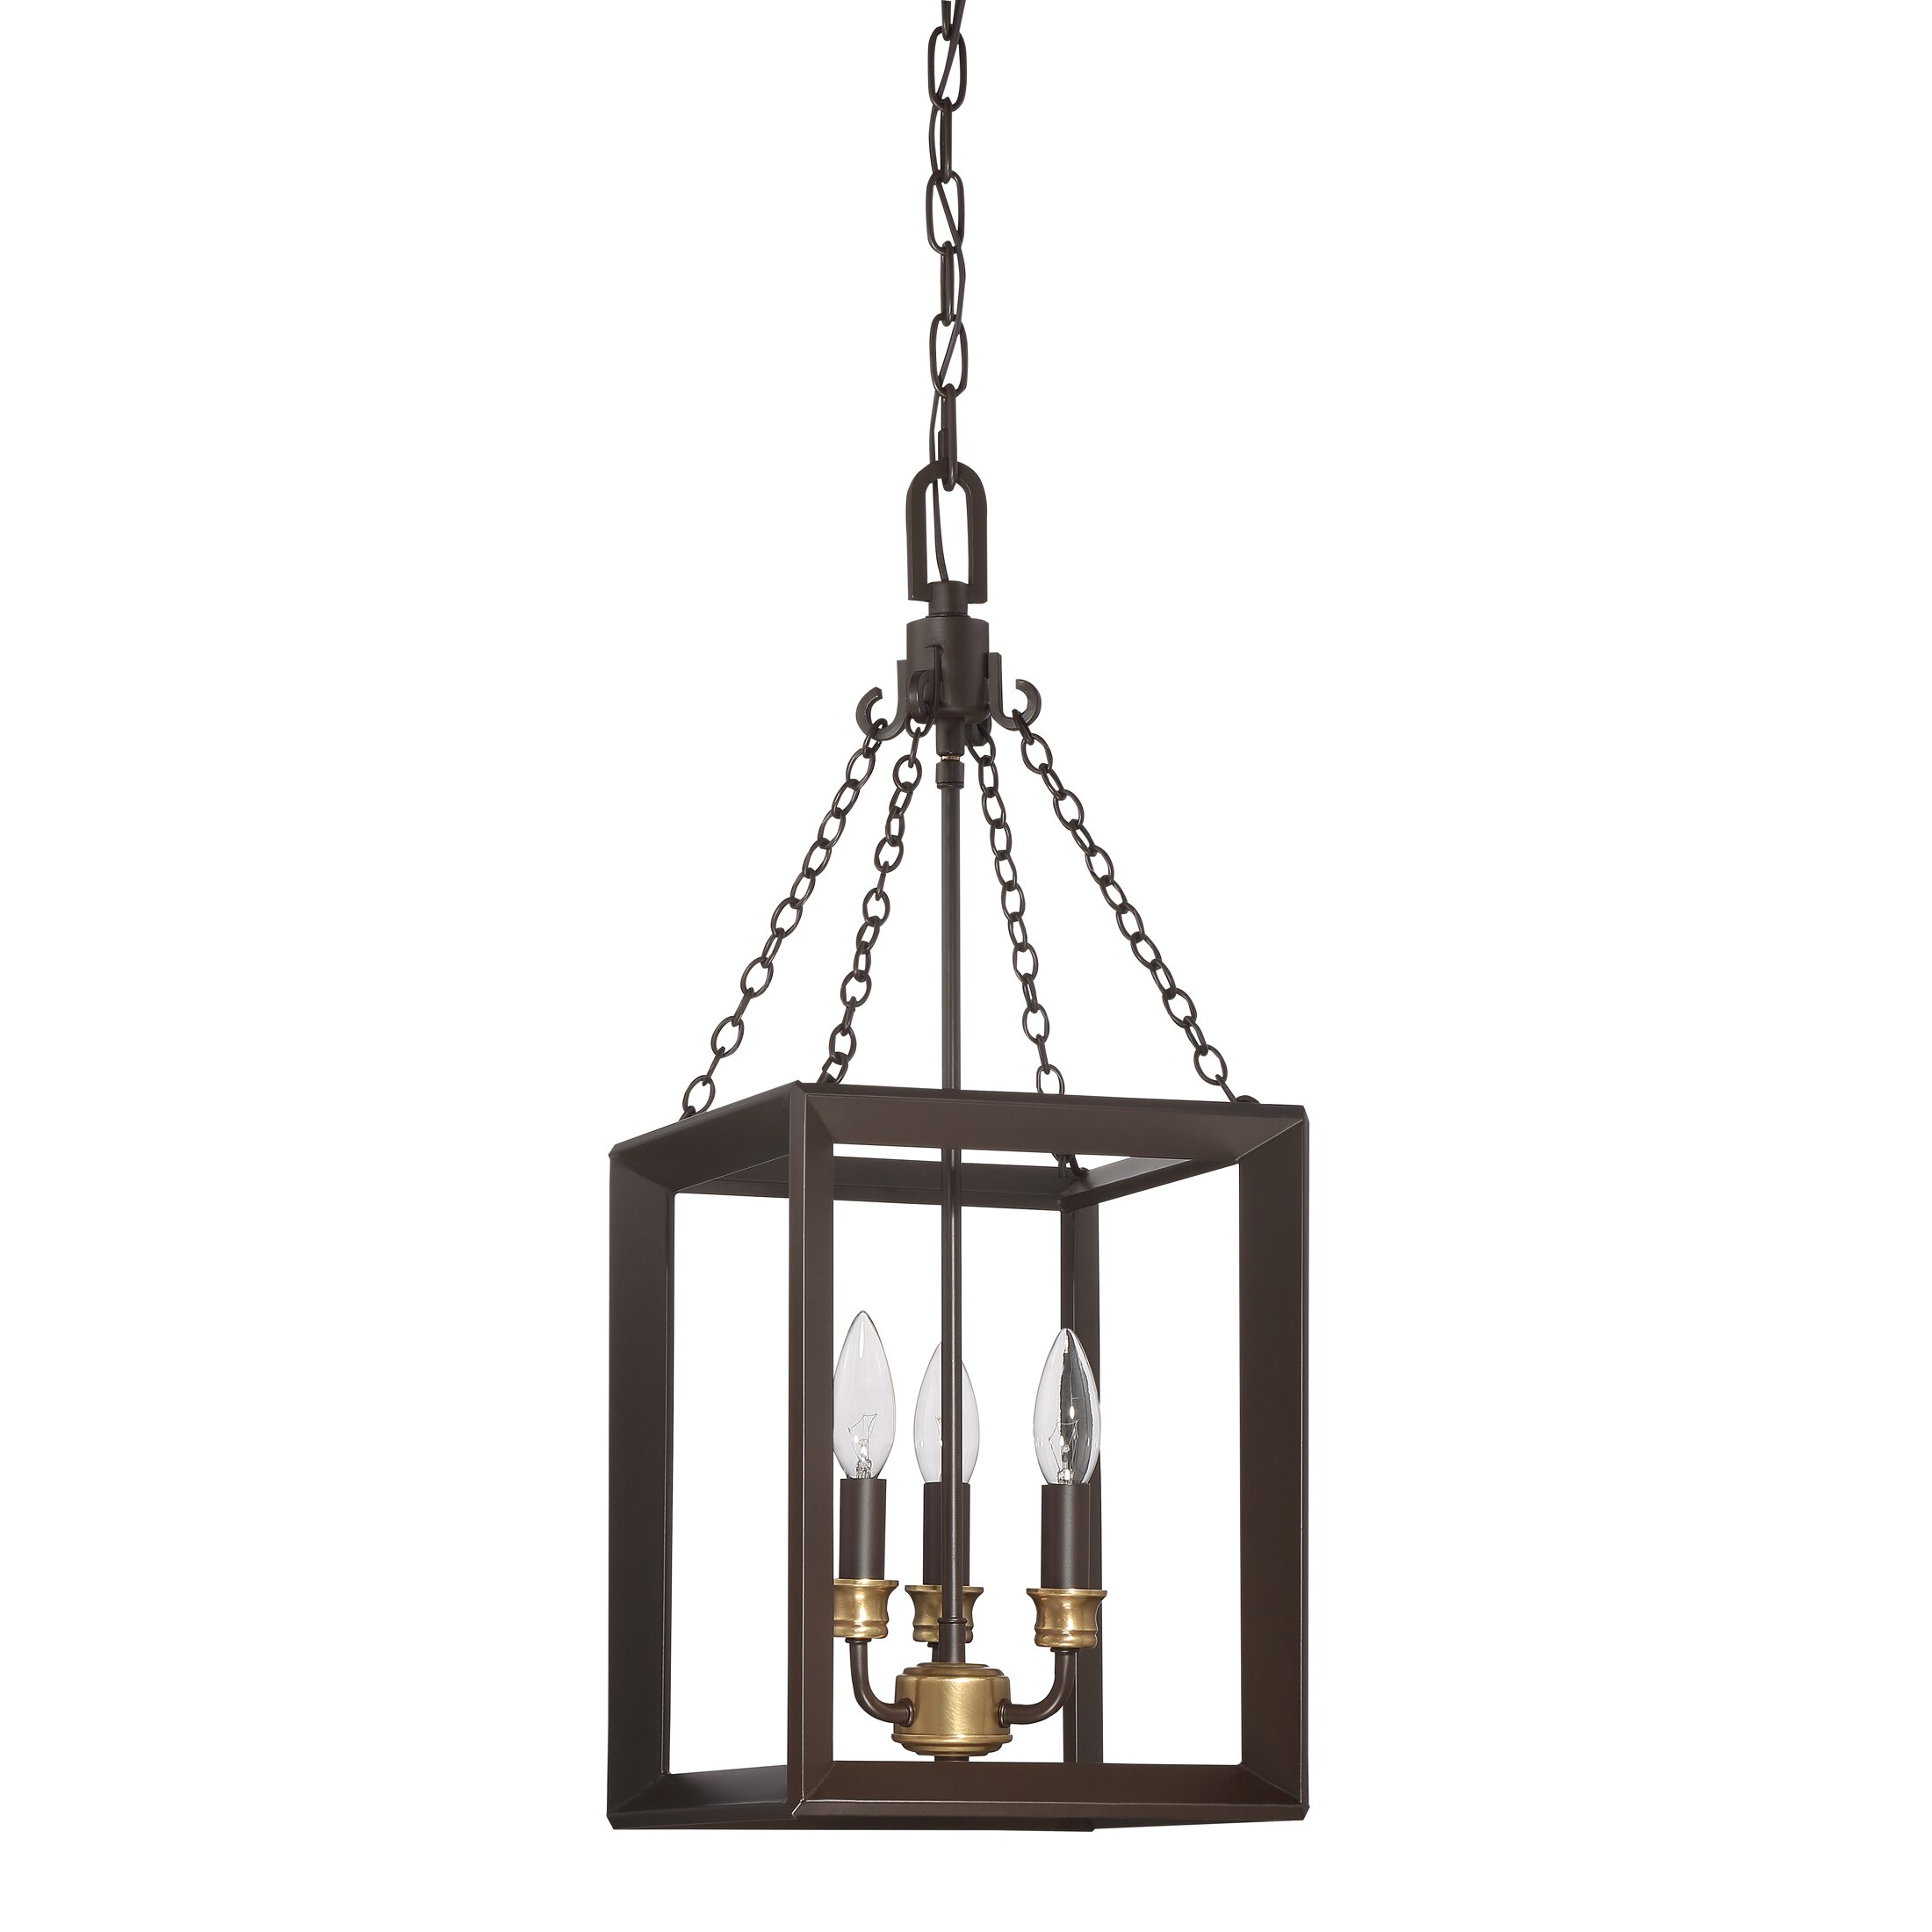 Farmhouse Entryway Chandelier: Laurel Foundry Modern Farmhouse Ethyl 3 Light Foyer